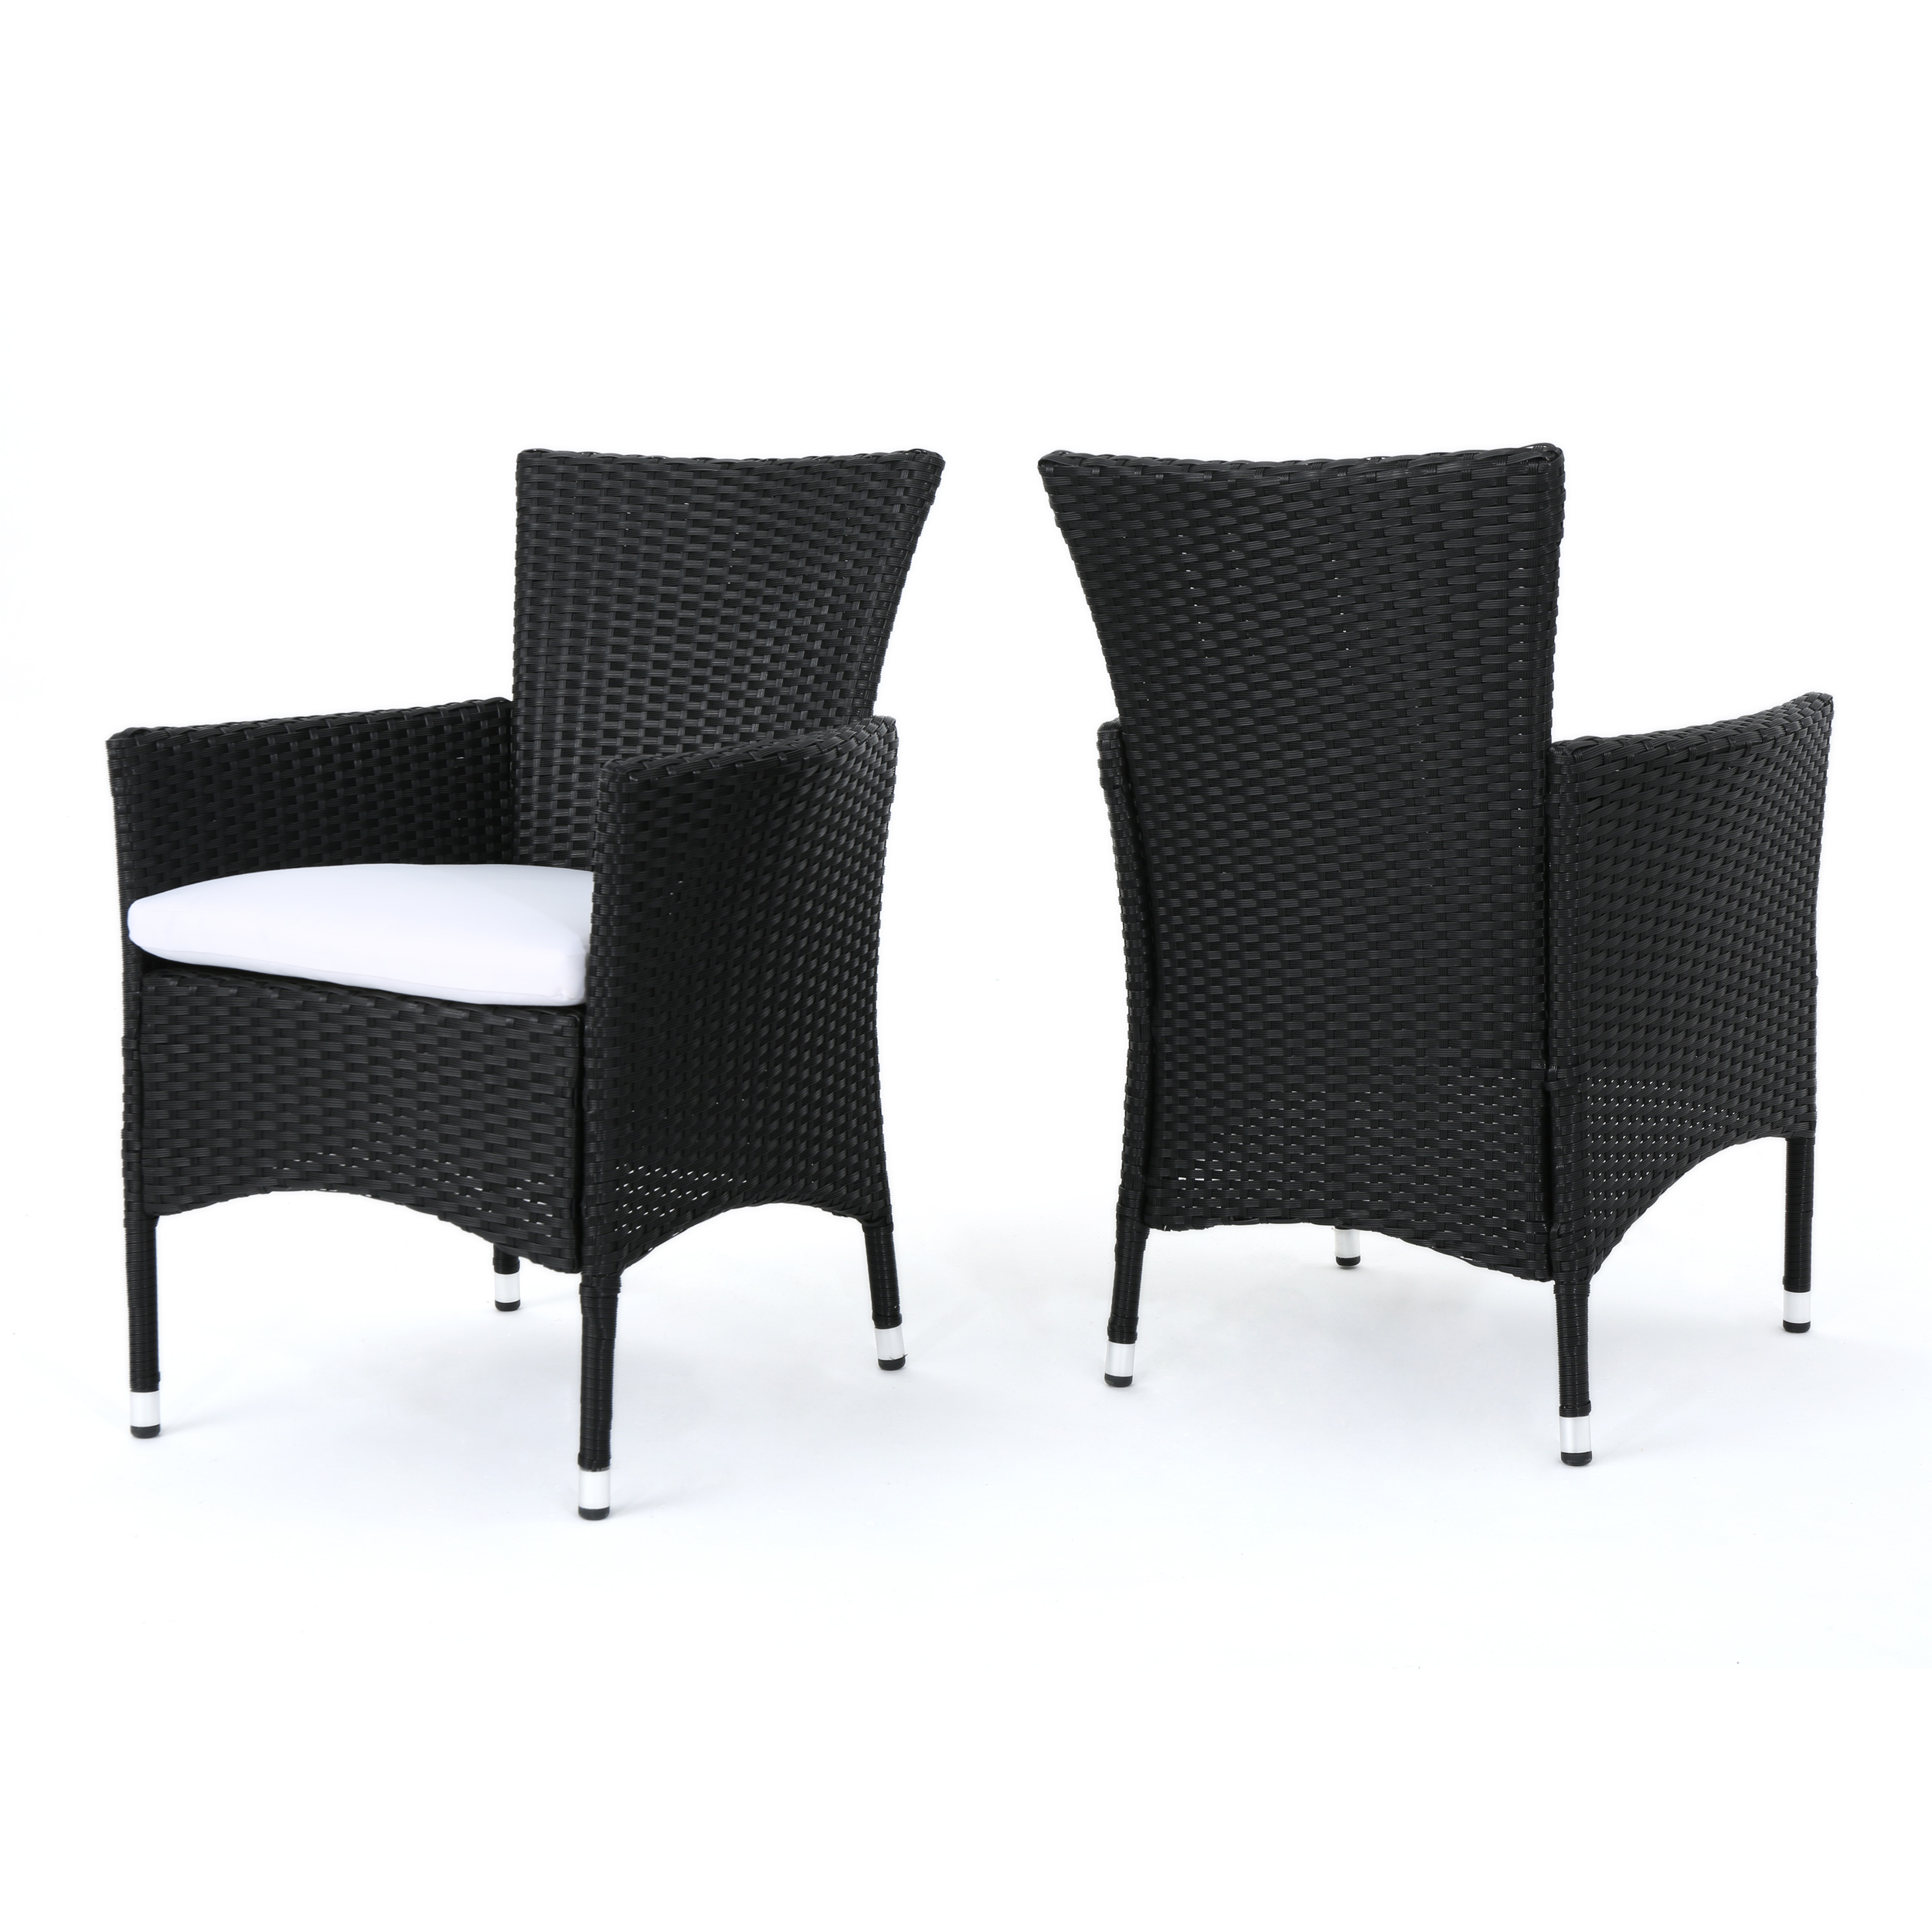 Curtis Outdoor Wicker Dining Chairs with White Water Resistant Cushions, Set of 2, Black